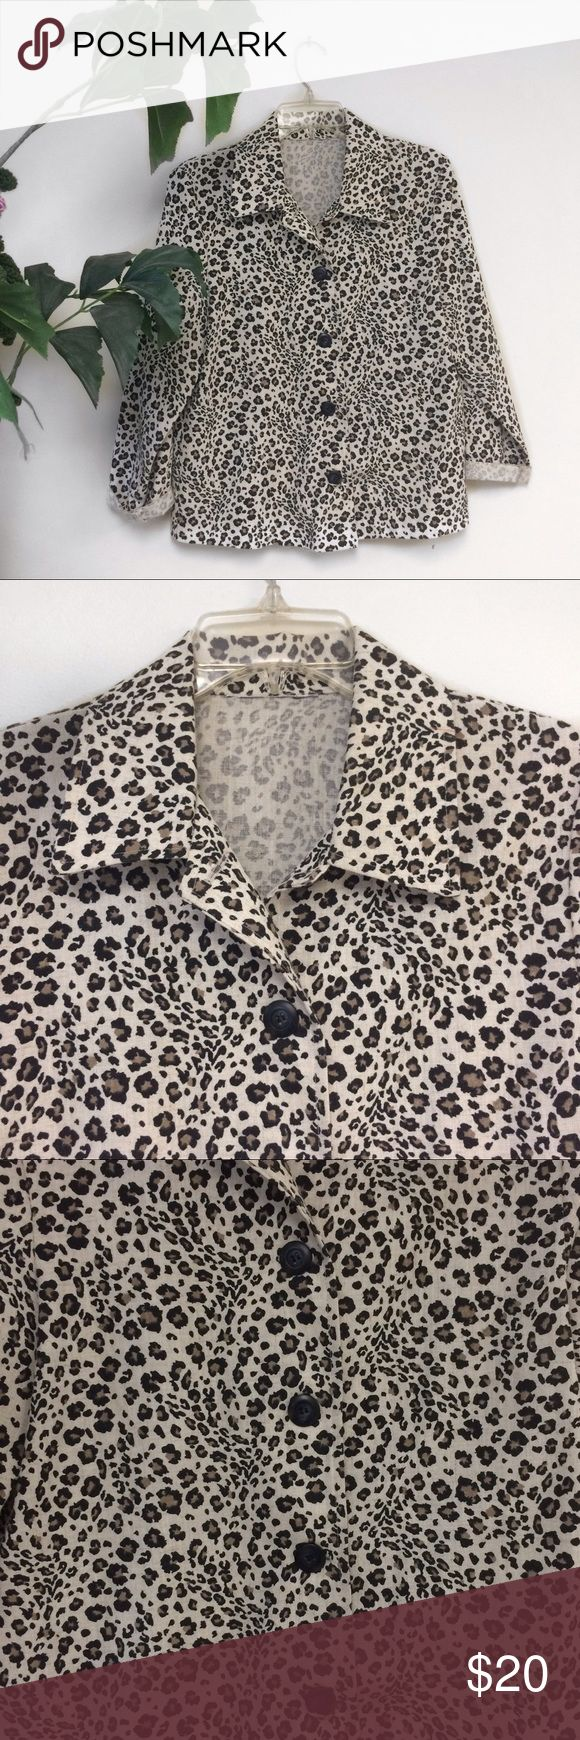 Vintage cheetah print shirt Vintage cheetah print blazer/shirt. It's a blazer but the material is very breathable like a shirt. It doesn't have a tag but it fits like a medium. (I'm a size small) Tops Button Down Shirts